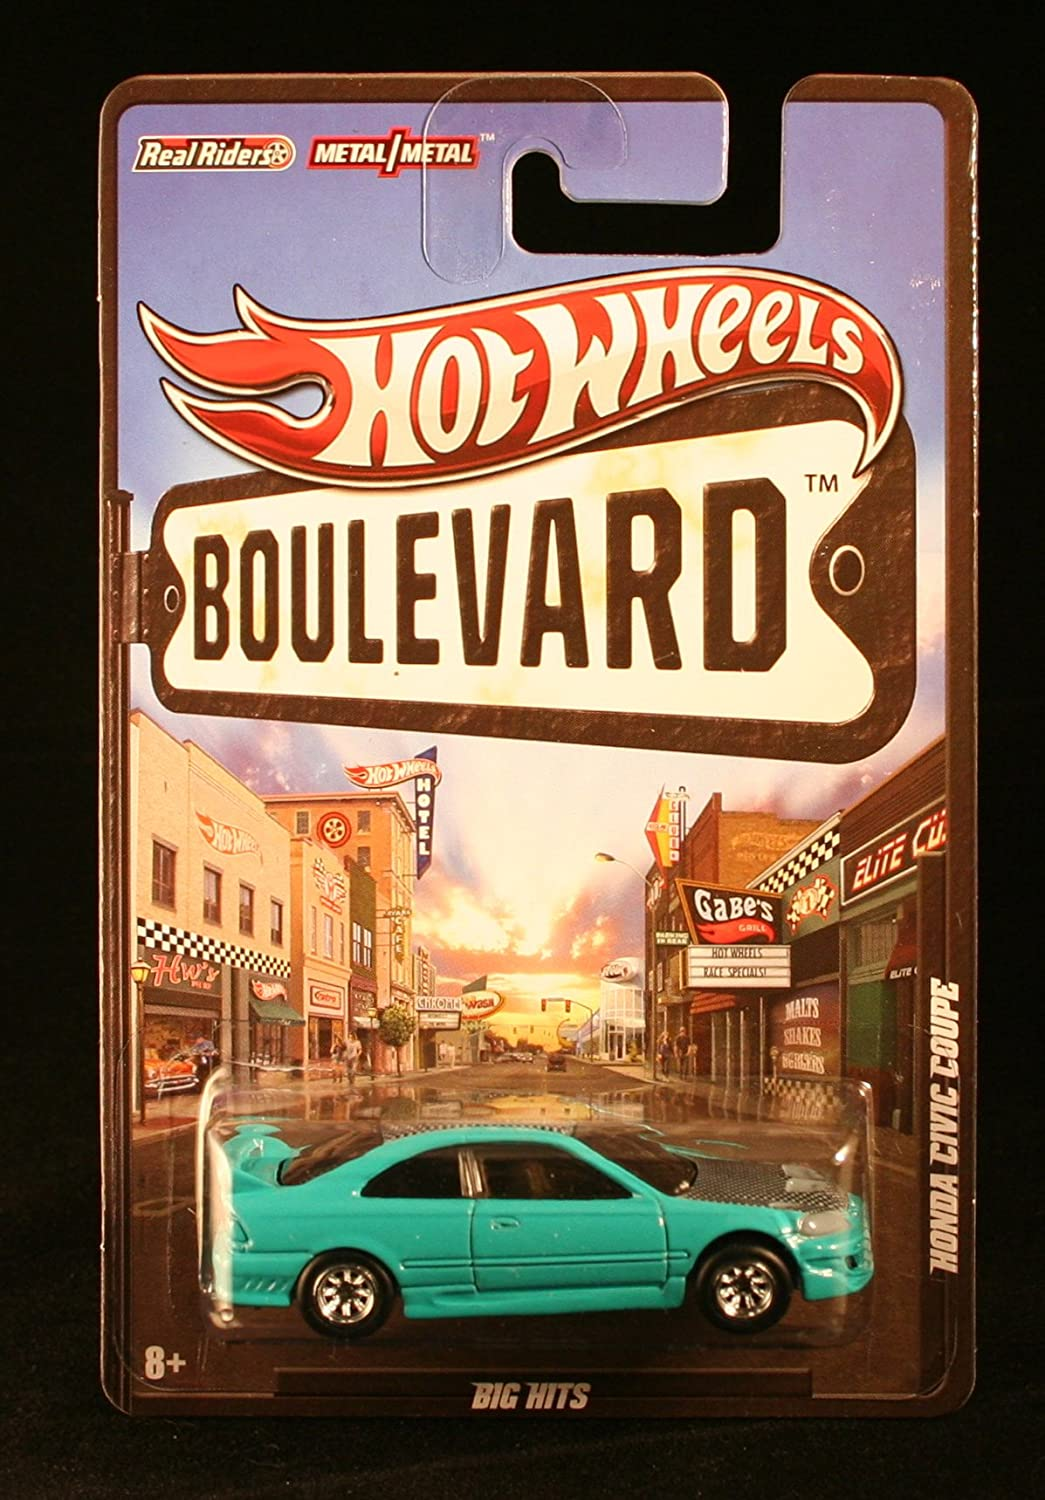 HOT WHEELS BOULEVARD BIG HITS 1 64 SCALE TEAL HONDA CIVIC COUPE DIECAST